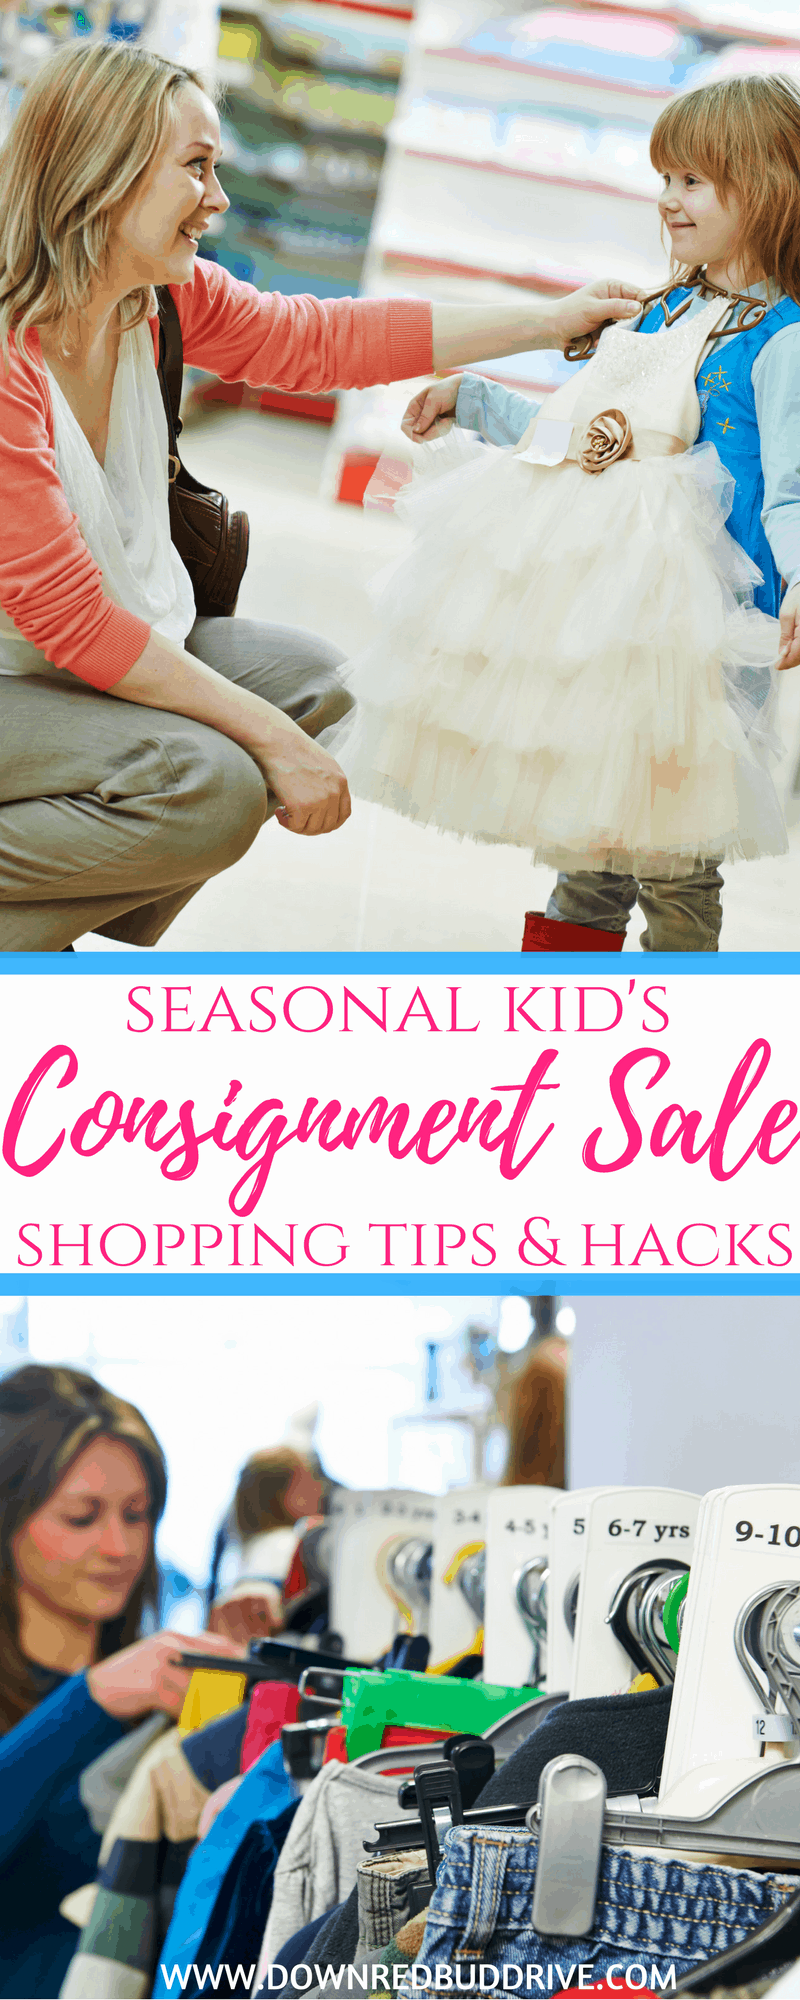 Kid's Consignment Sale Shopping Tips | Consignment Sale | Kids Consignment Sales | Seasonal Kids Sale | Consignment Mommies | Save on Kids Clothes | Kids Clothes | Back to School Clothes | Down Redbud Drive | #consignmentsales #kidsclothes #shoppingforkids #backtoschool